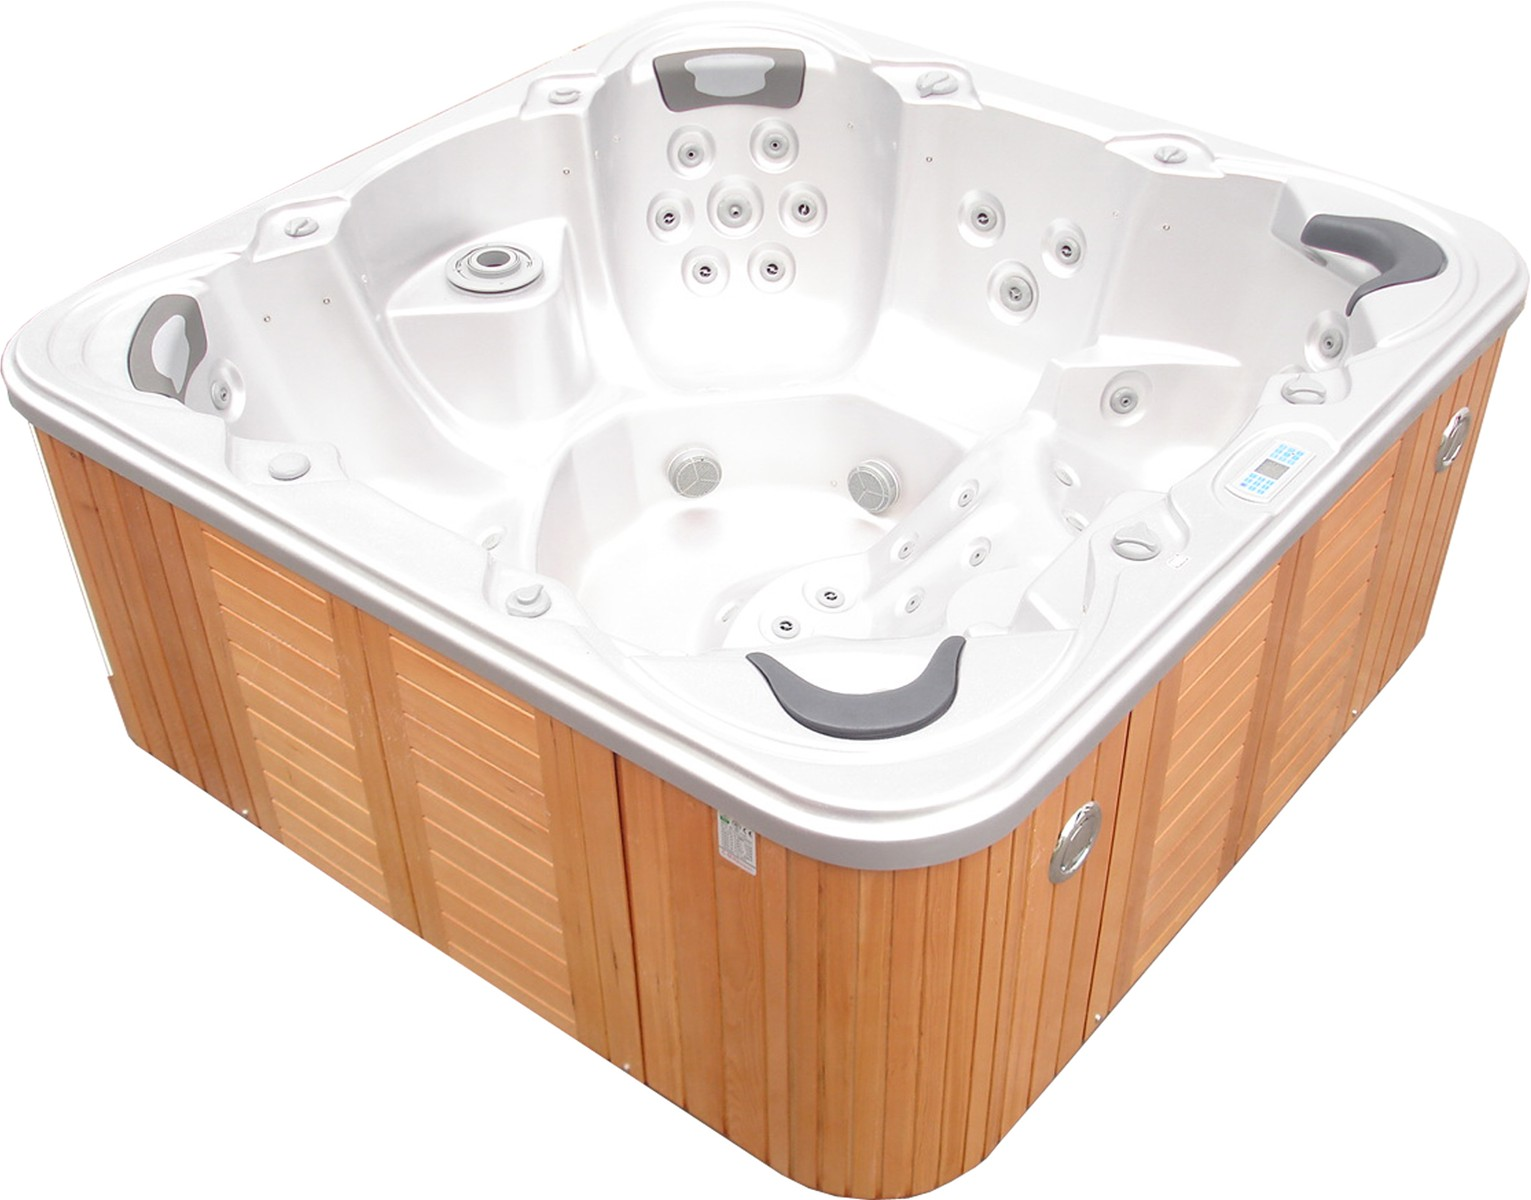 Balboa Hot Tub >> Balboa Control System Jacuzzi Hot Tub From China Manufacturer